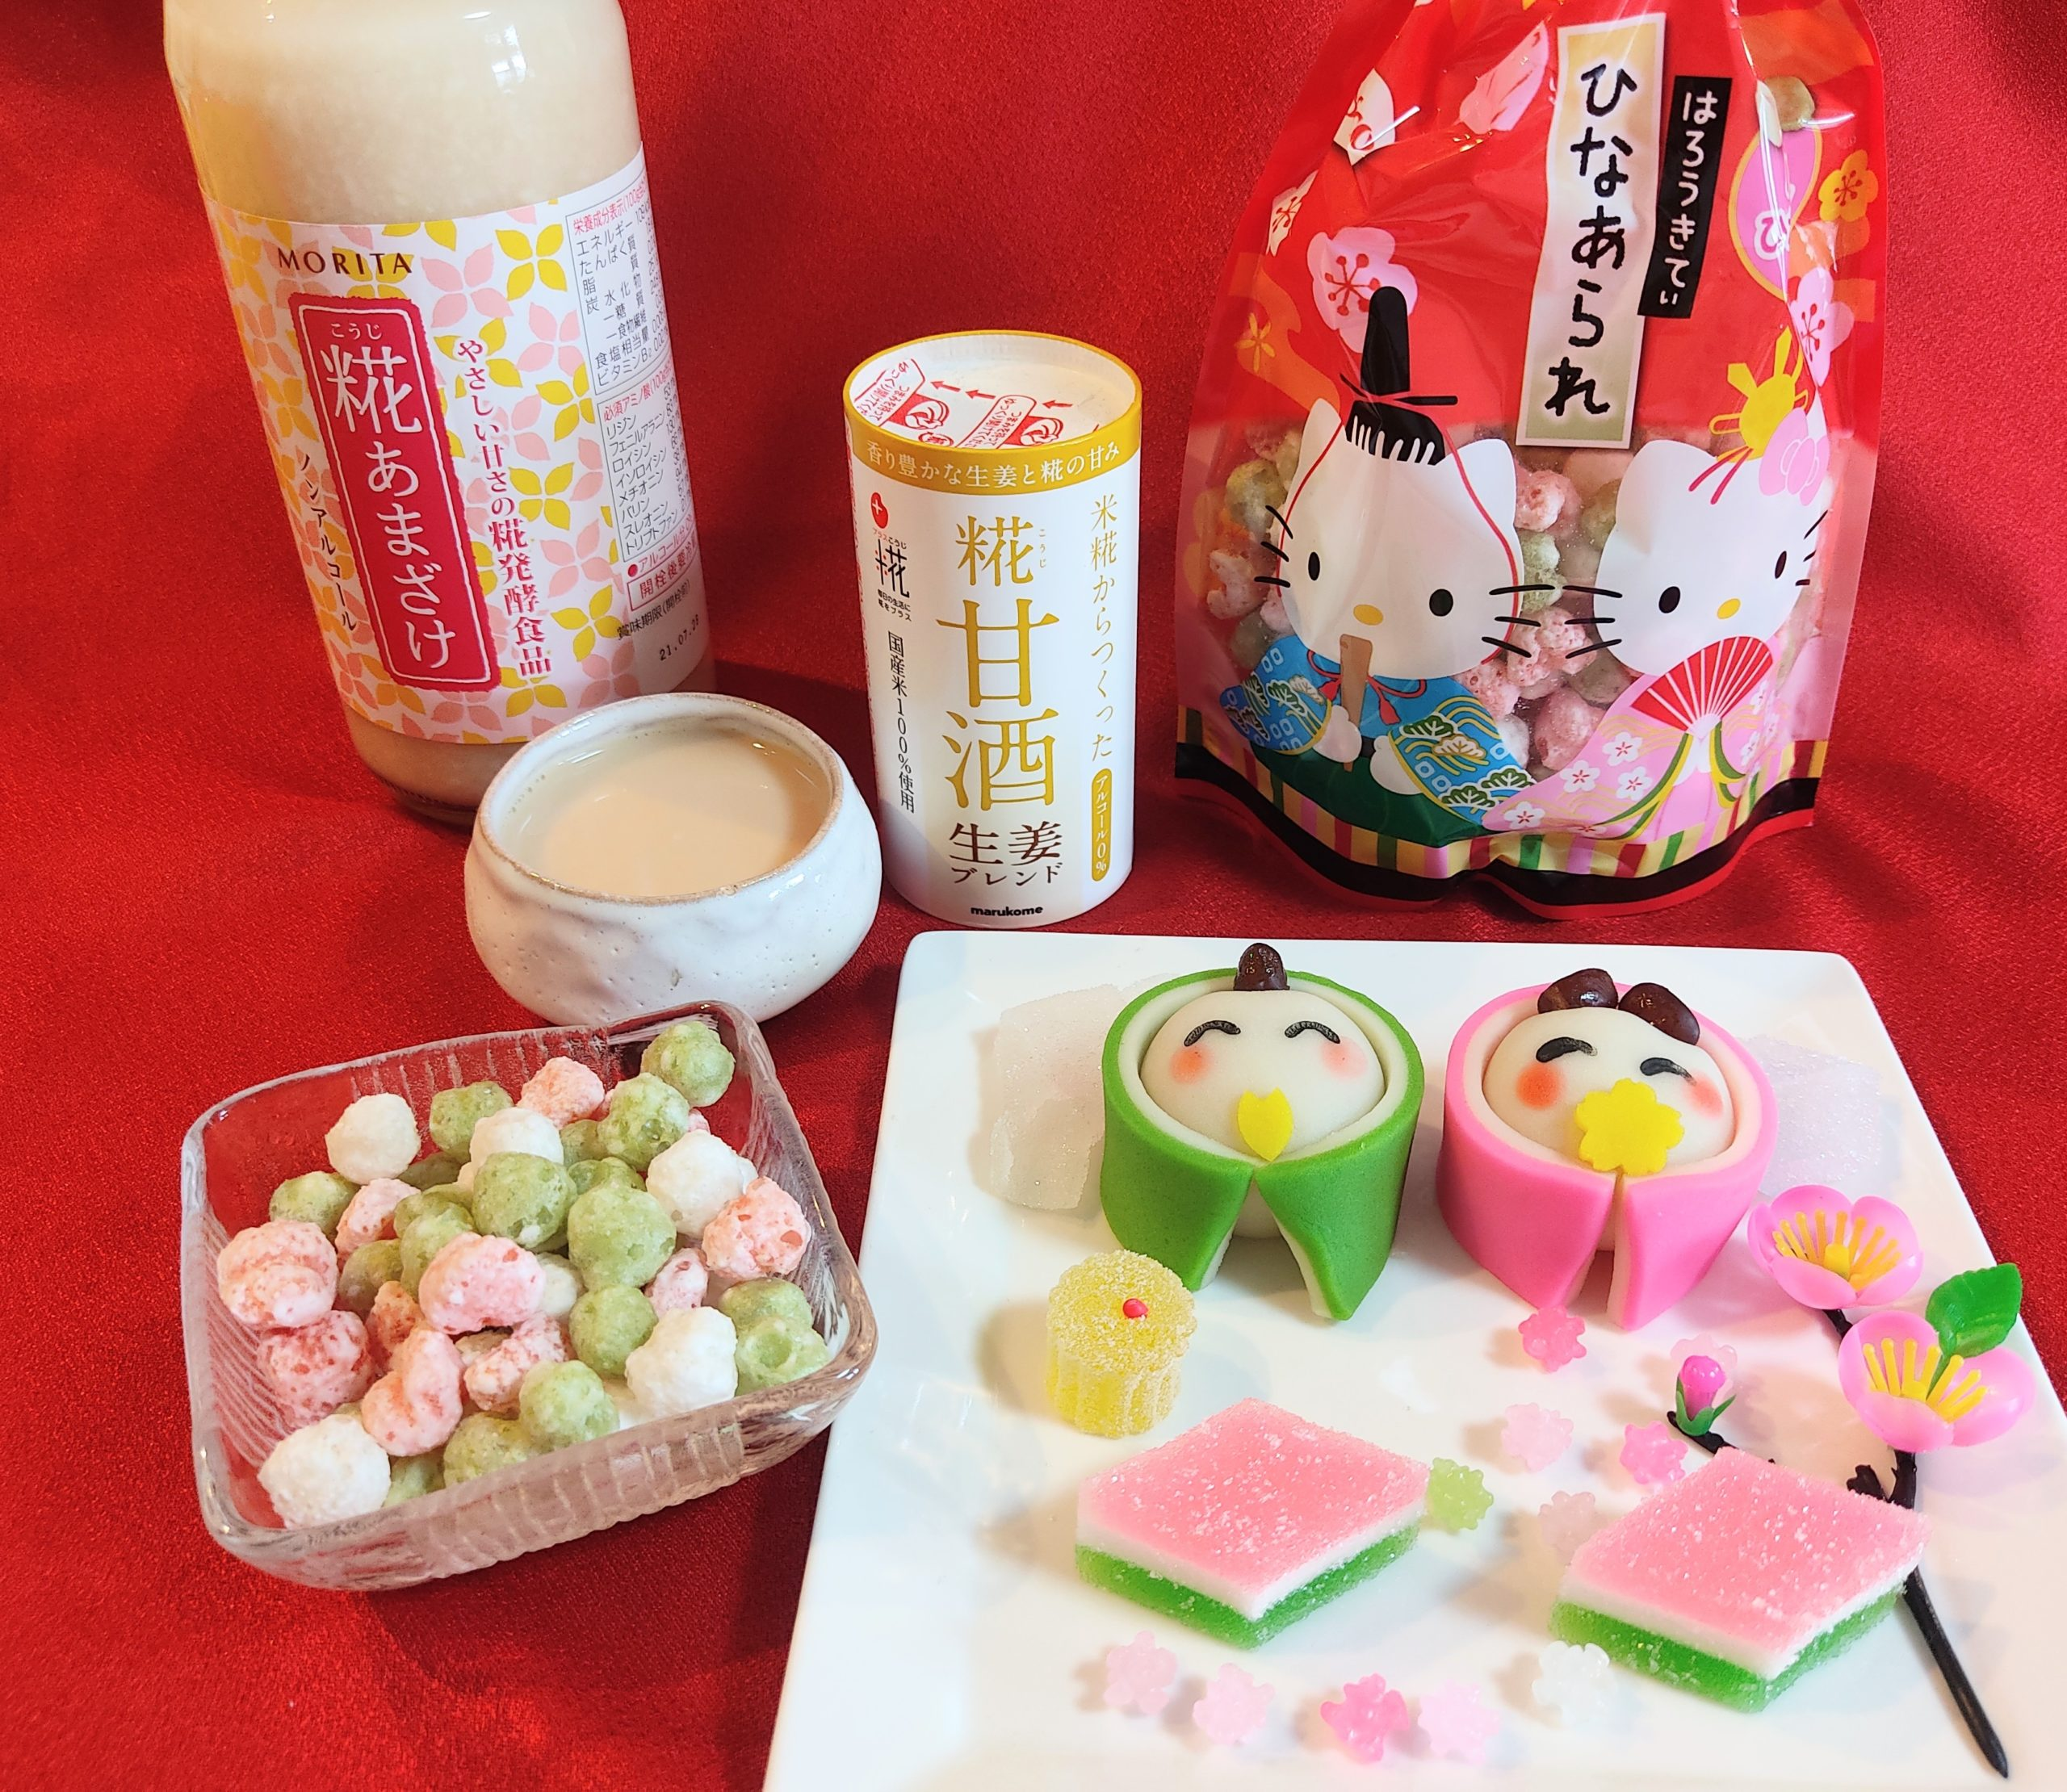 Hello kitty hina arare, amazake, hishimochi, Japanese sweets and traditional food eaten during the Hina Matsuri holiday